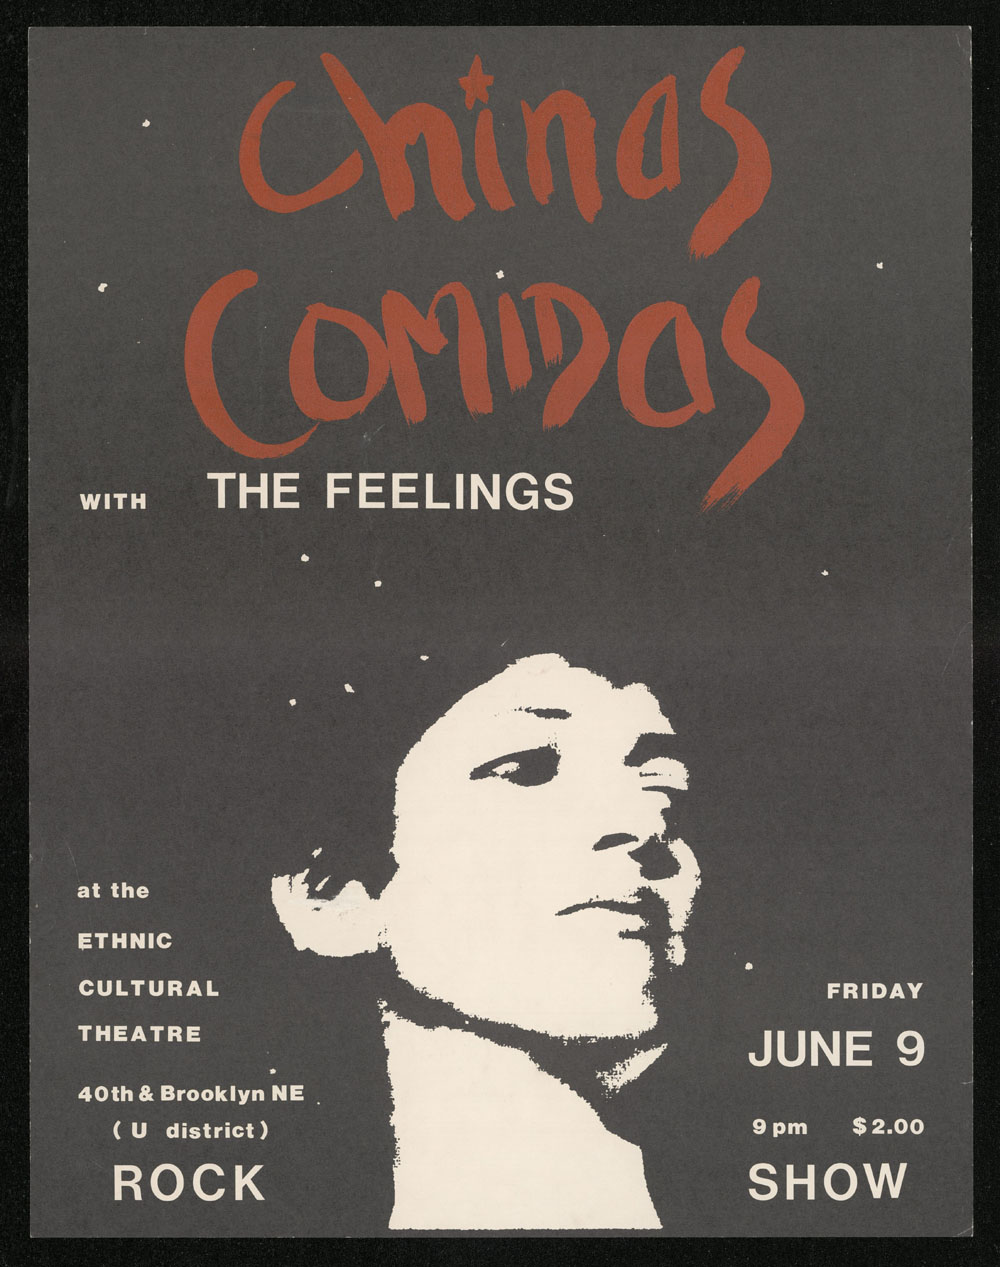 CHINAS COMIDAS w/ The Feelings POSTER